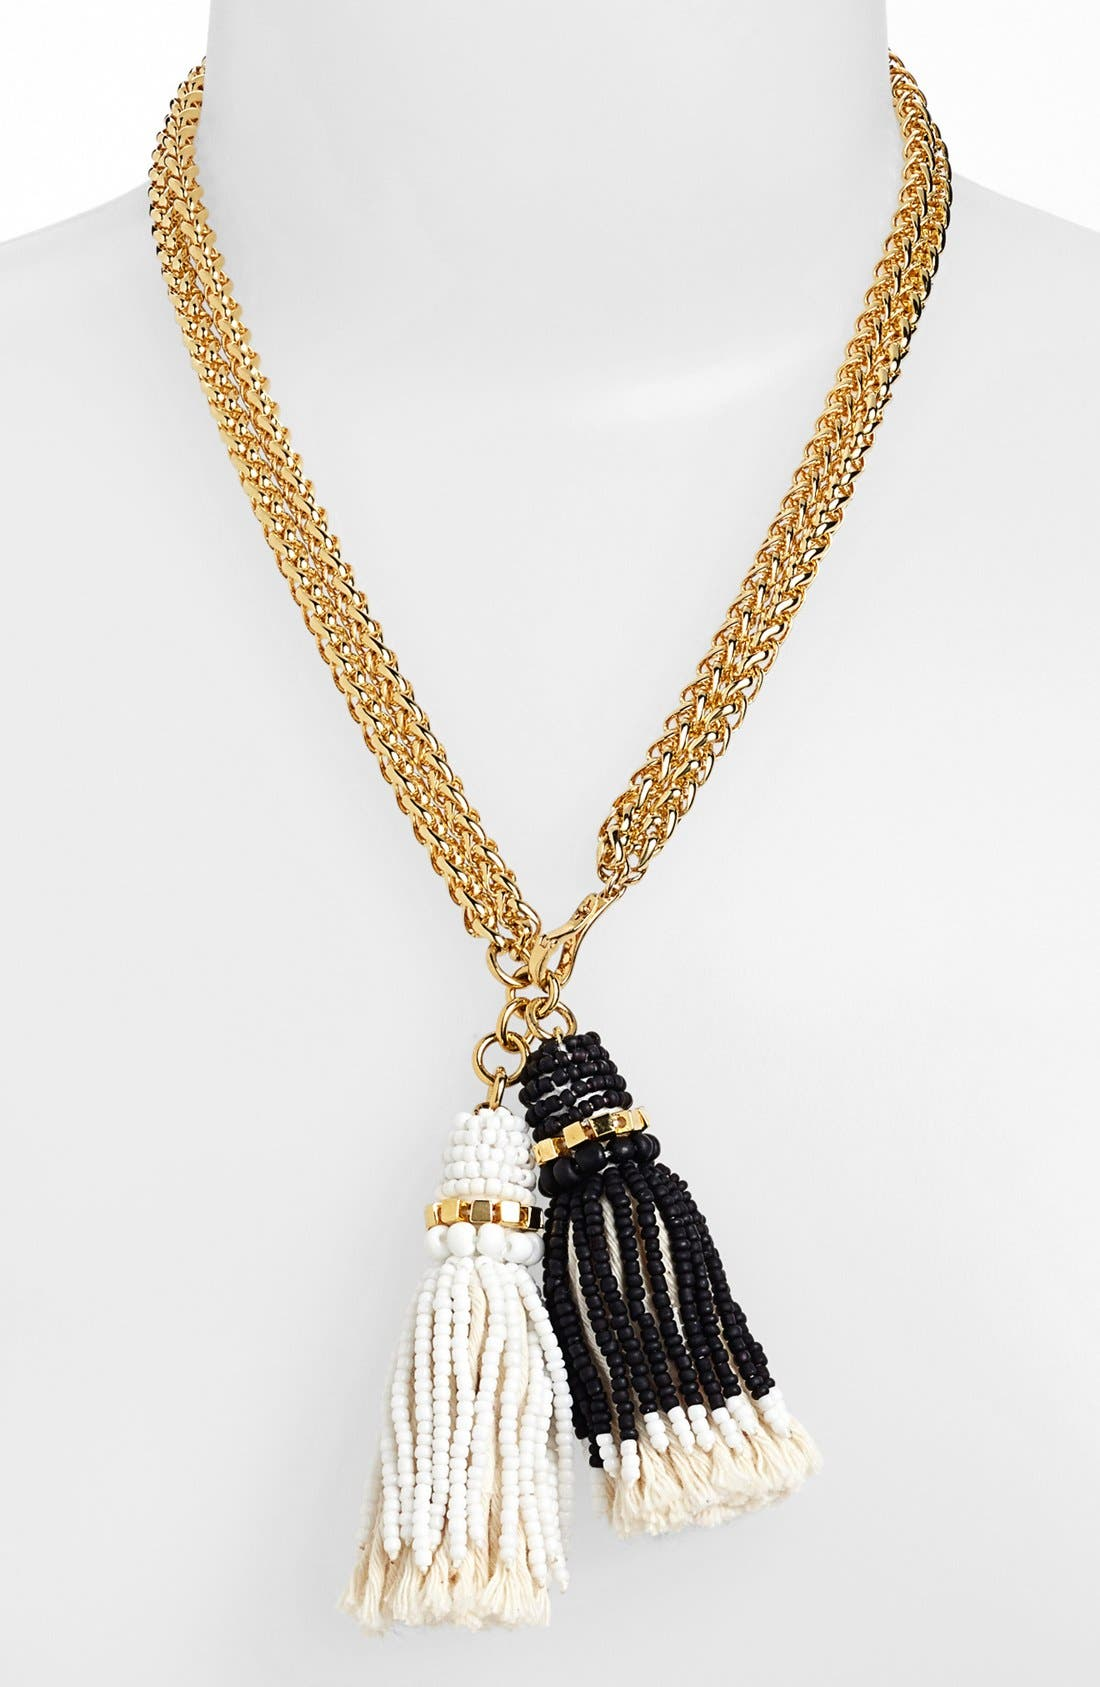 Main Image - Vince Camuto 'Rope Royalty' Convertible Tassel Necklace